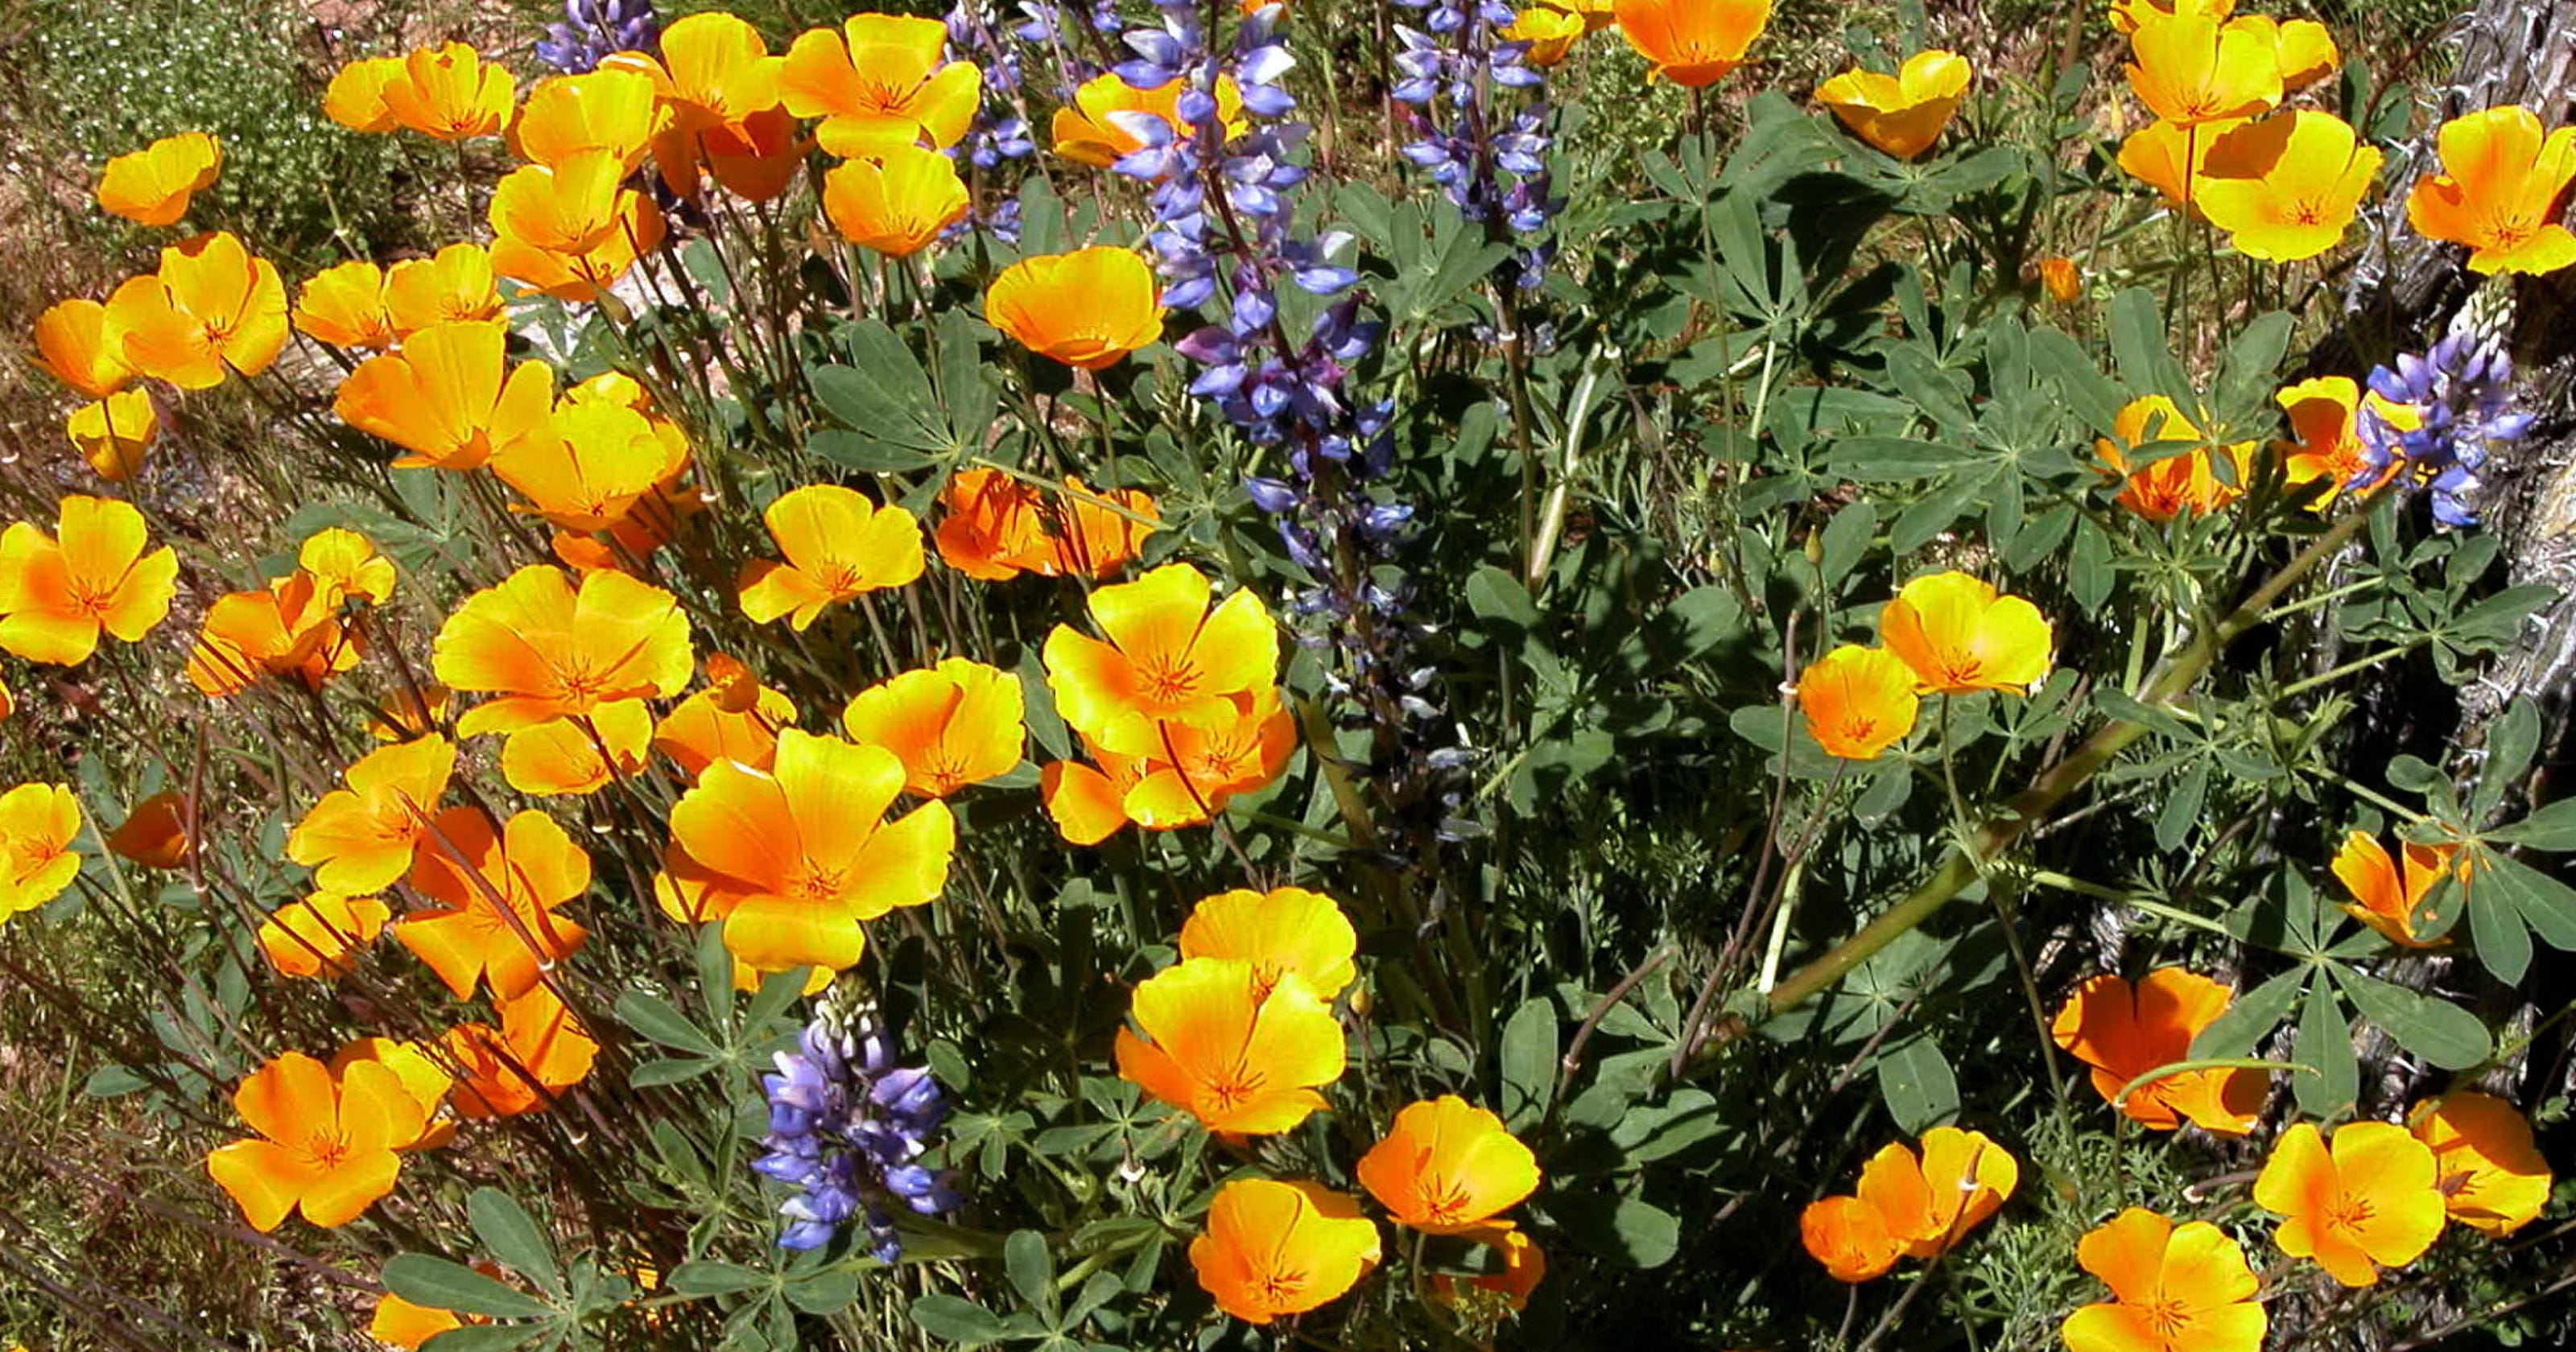 Plant Seeds Now For Spring Wildflowers